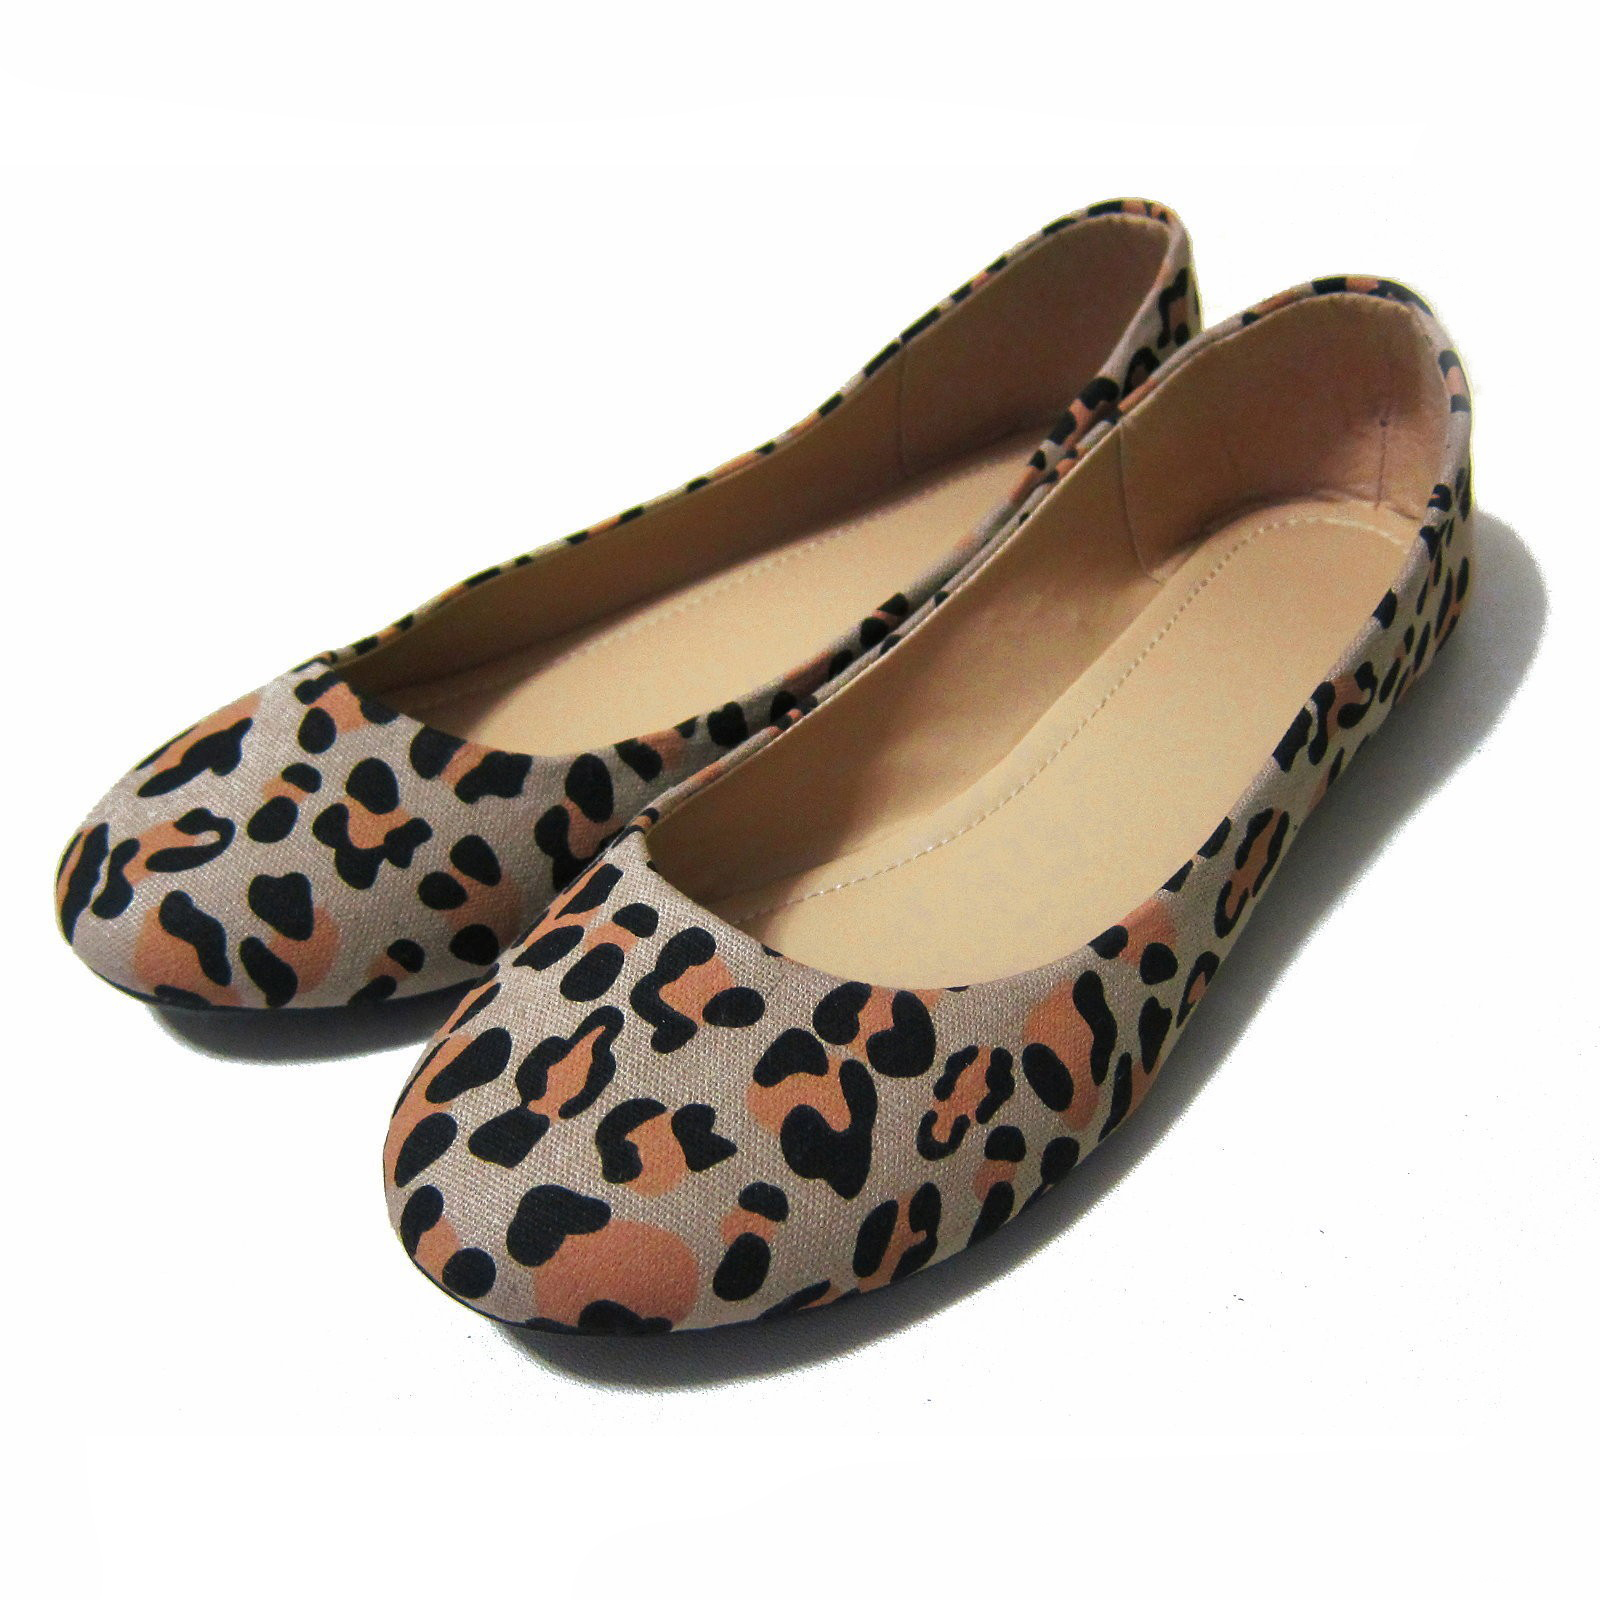 Womens Canvas Shoes Loafer Leopard Zebra Casual Lady Ballet Flat Size 6-7.5 NEW